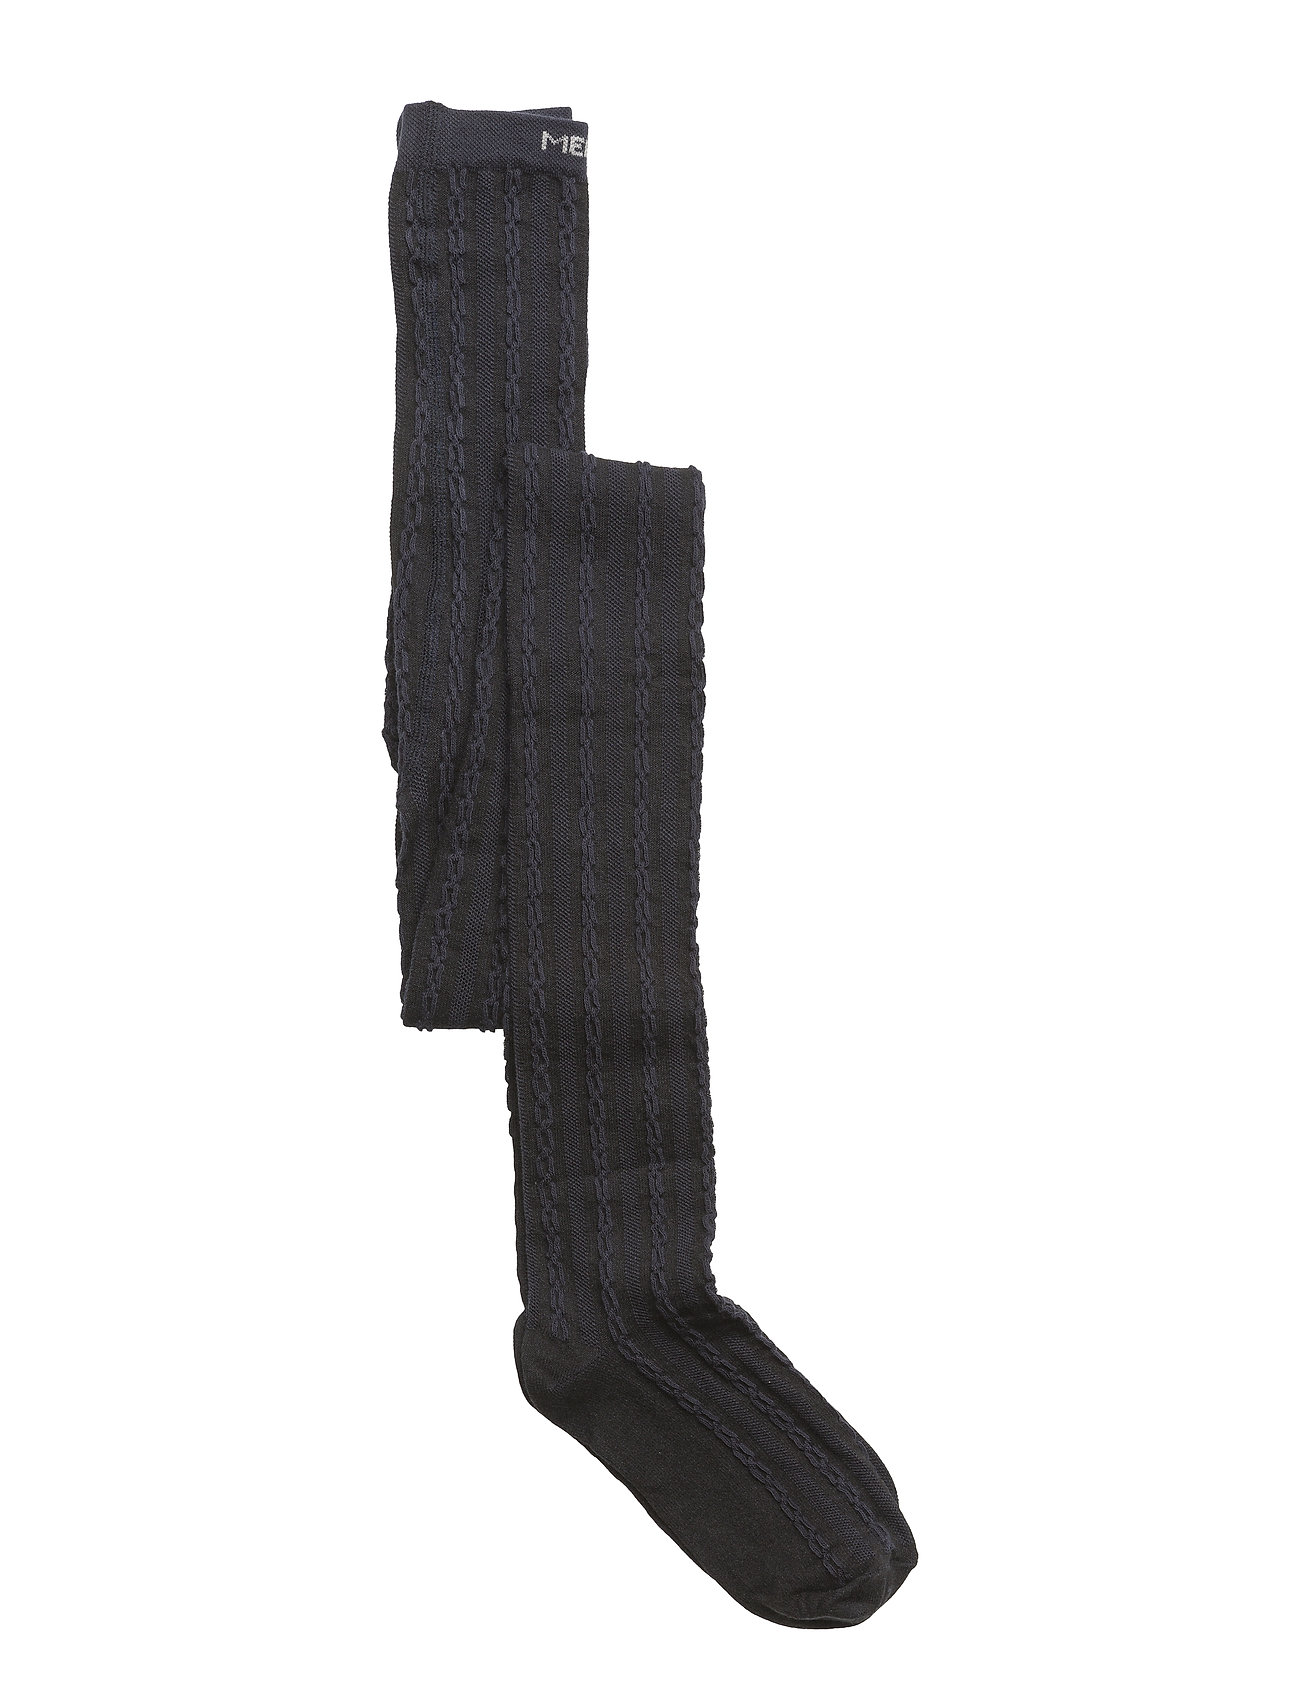 Melton Tights All Size - Cable Knit